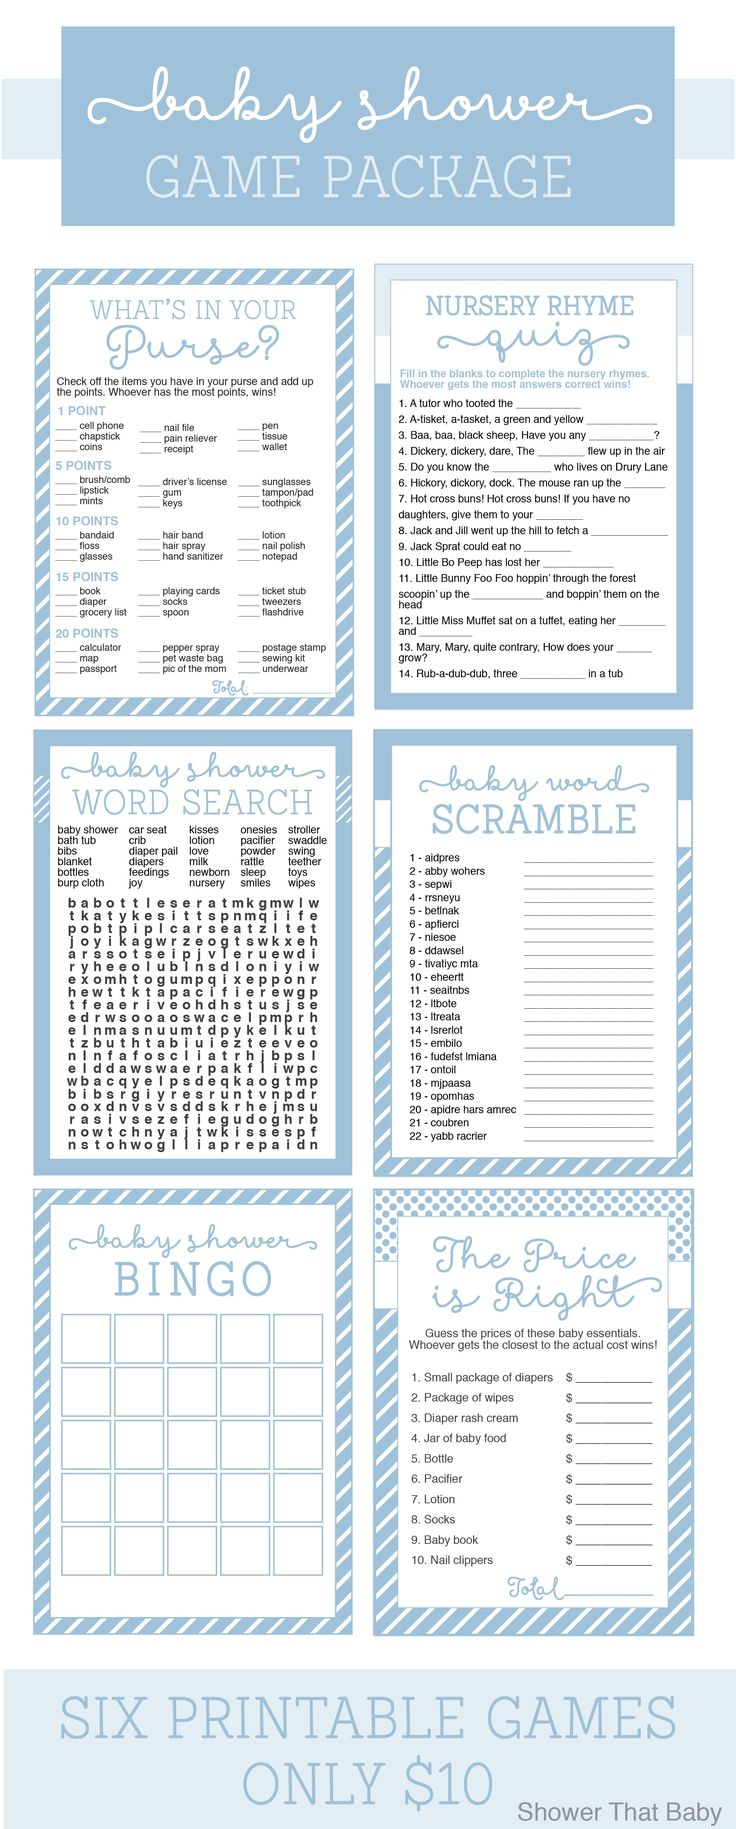 Baby Shower Games Package in Blue for only $10.00 - Bingo, Price is Right, What's in Your Purse, Word Scramble, Word Search, and Nursery Rhyme Quiz https://www.etsy.com/listing/188864906/baby-shower-games-package-in-blue-six